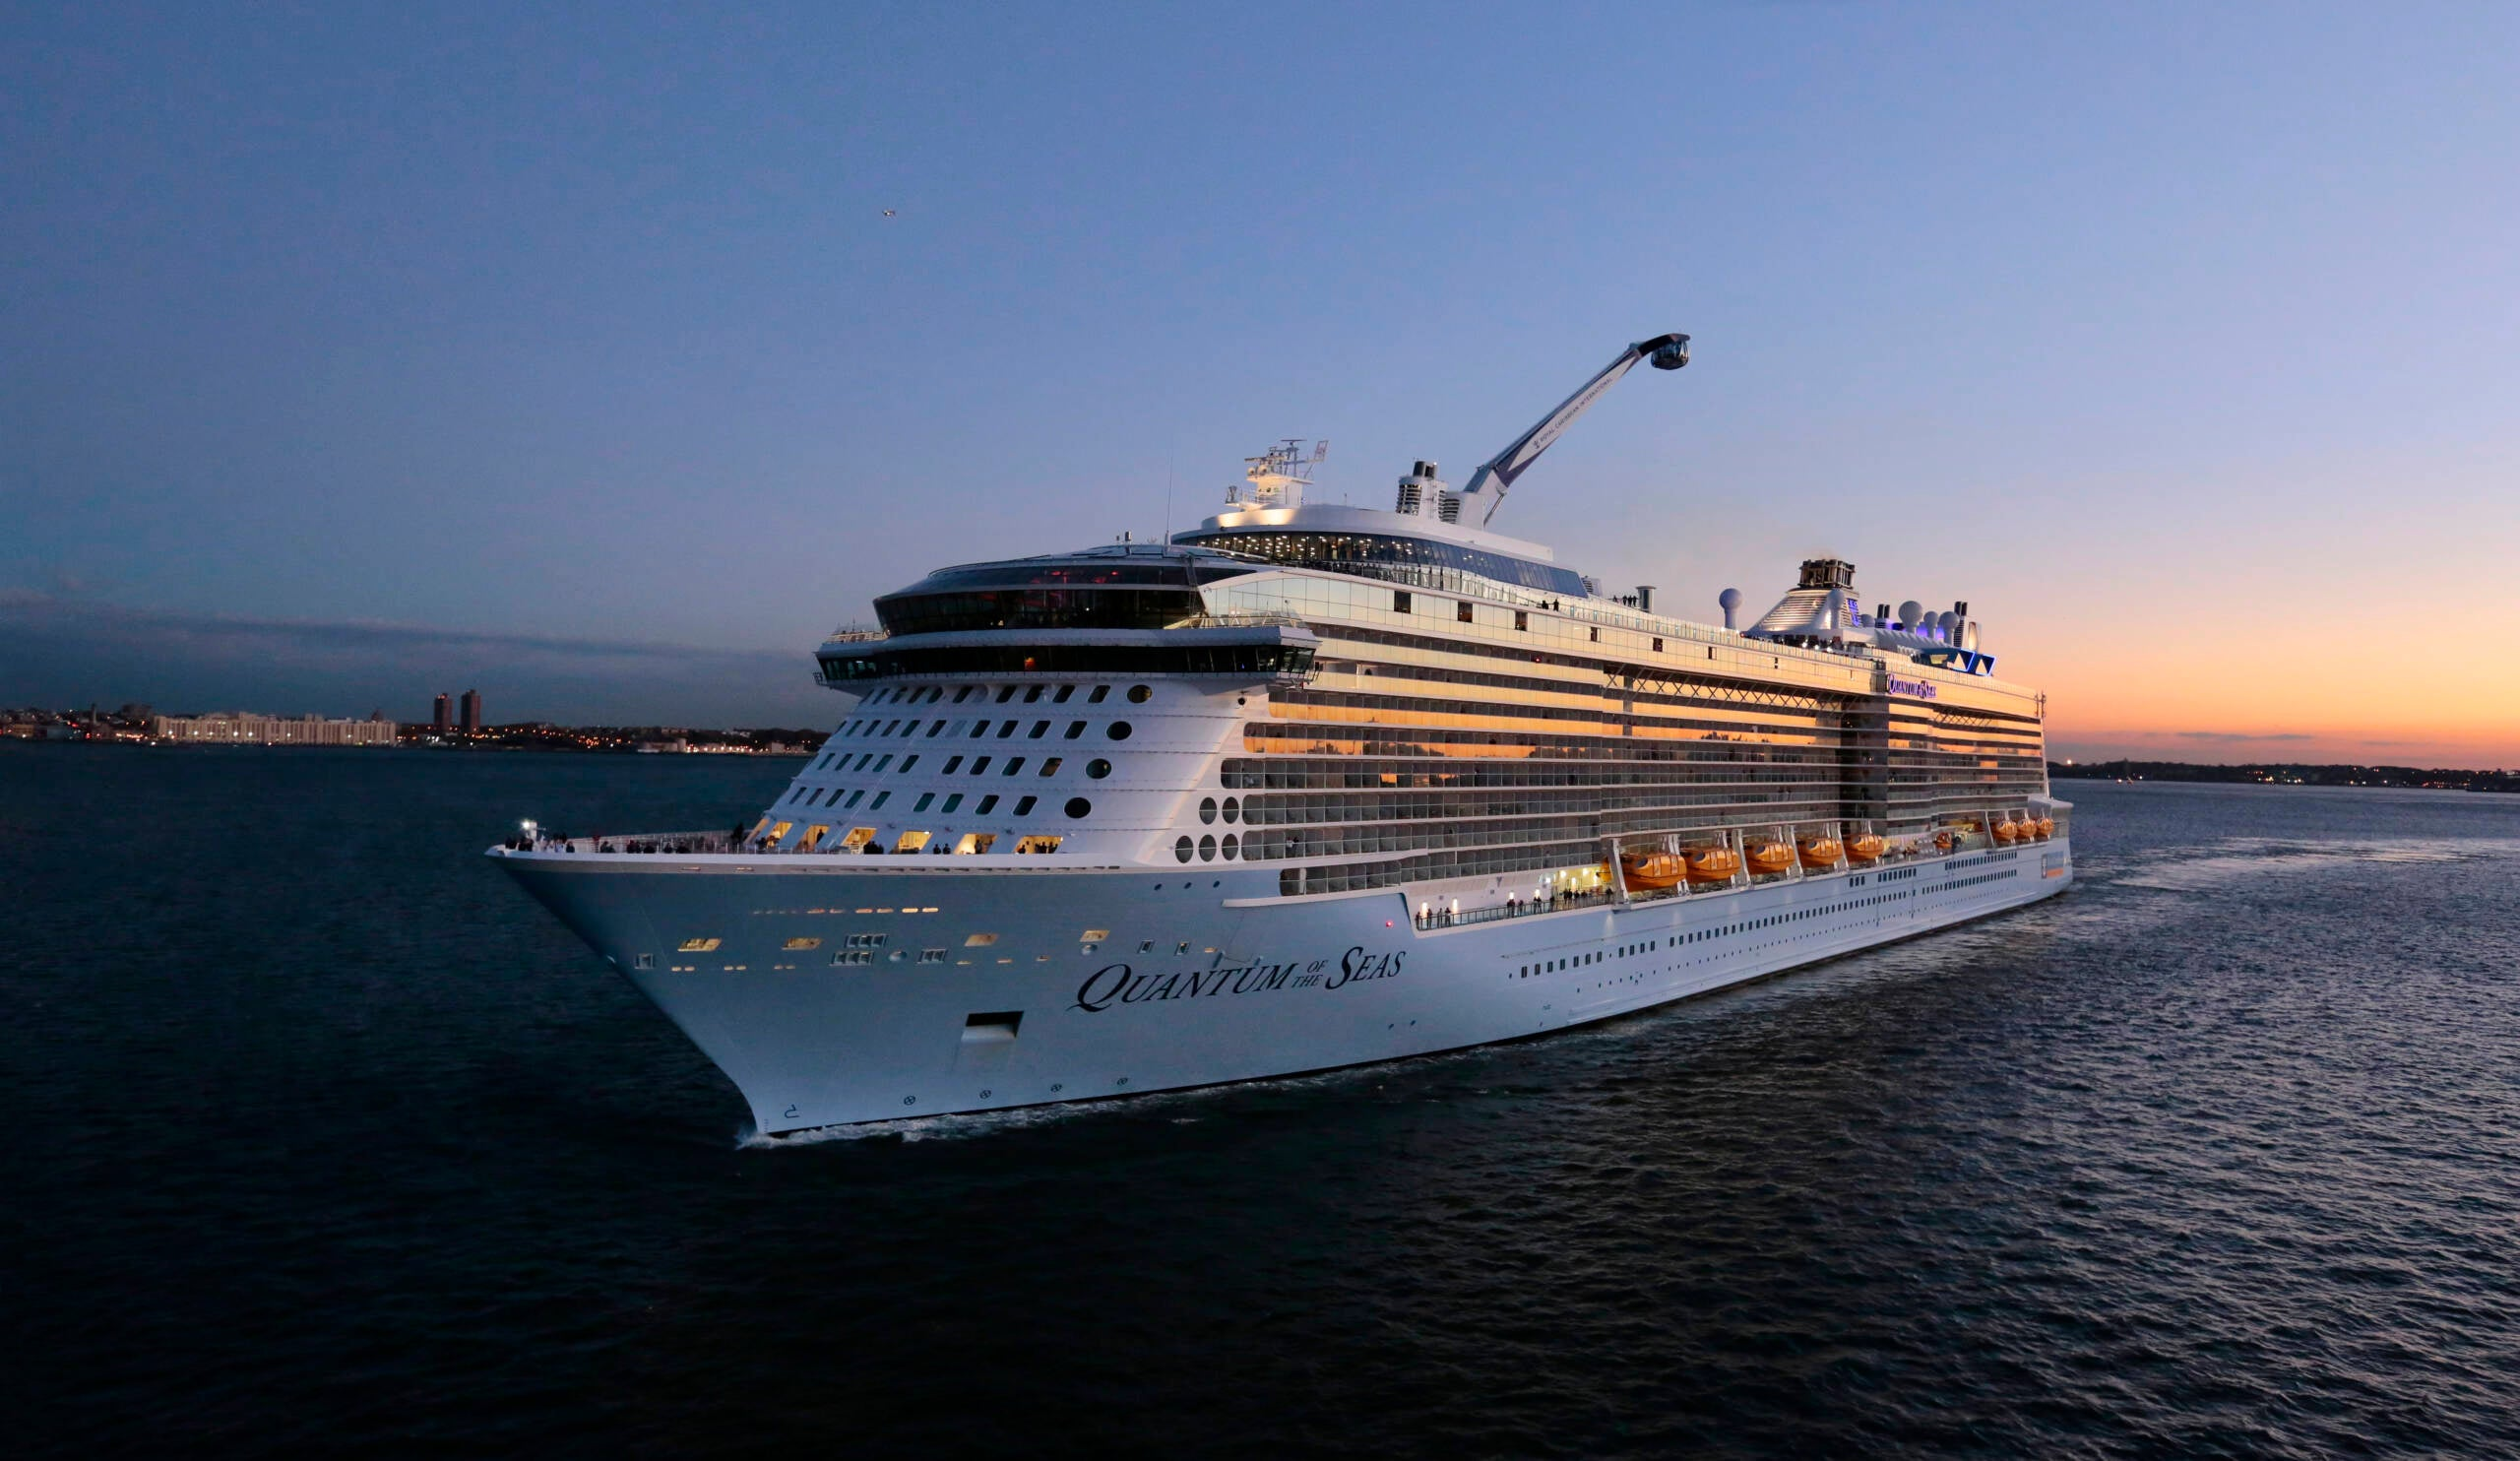 Now hiring: Cruisers willing to go on simulated voyages for Royal Caribbean